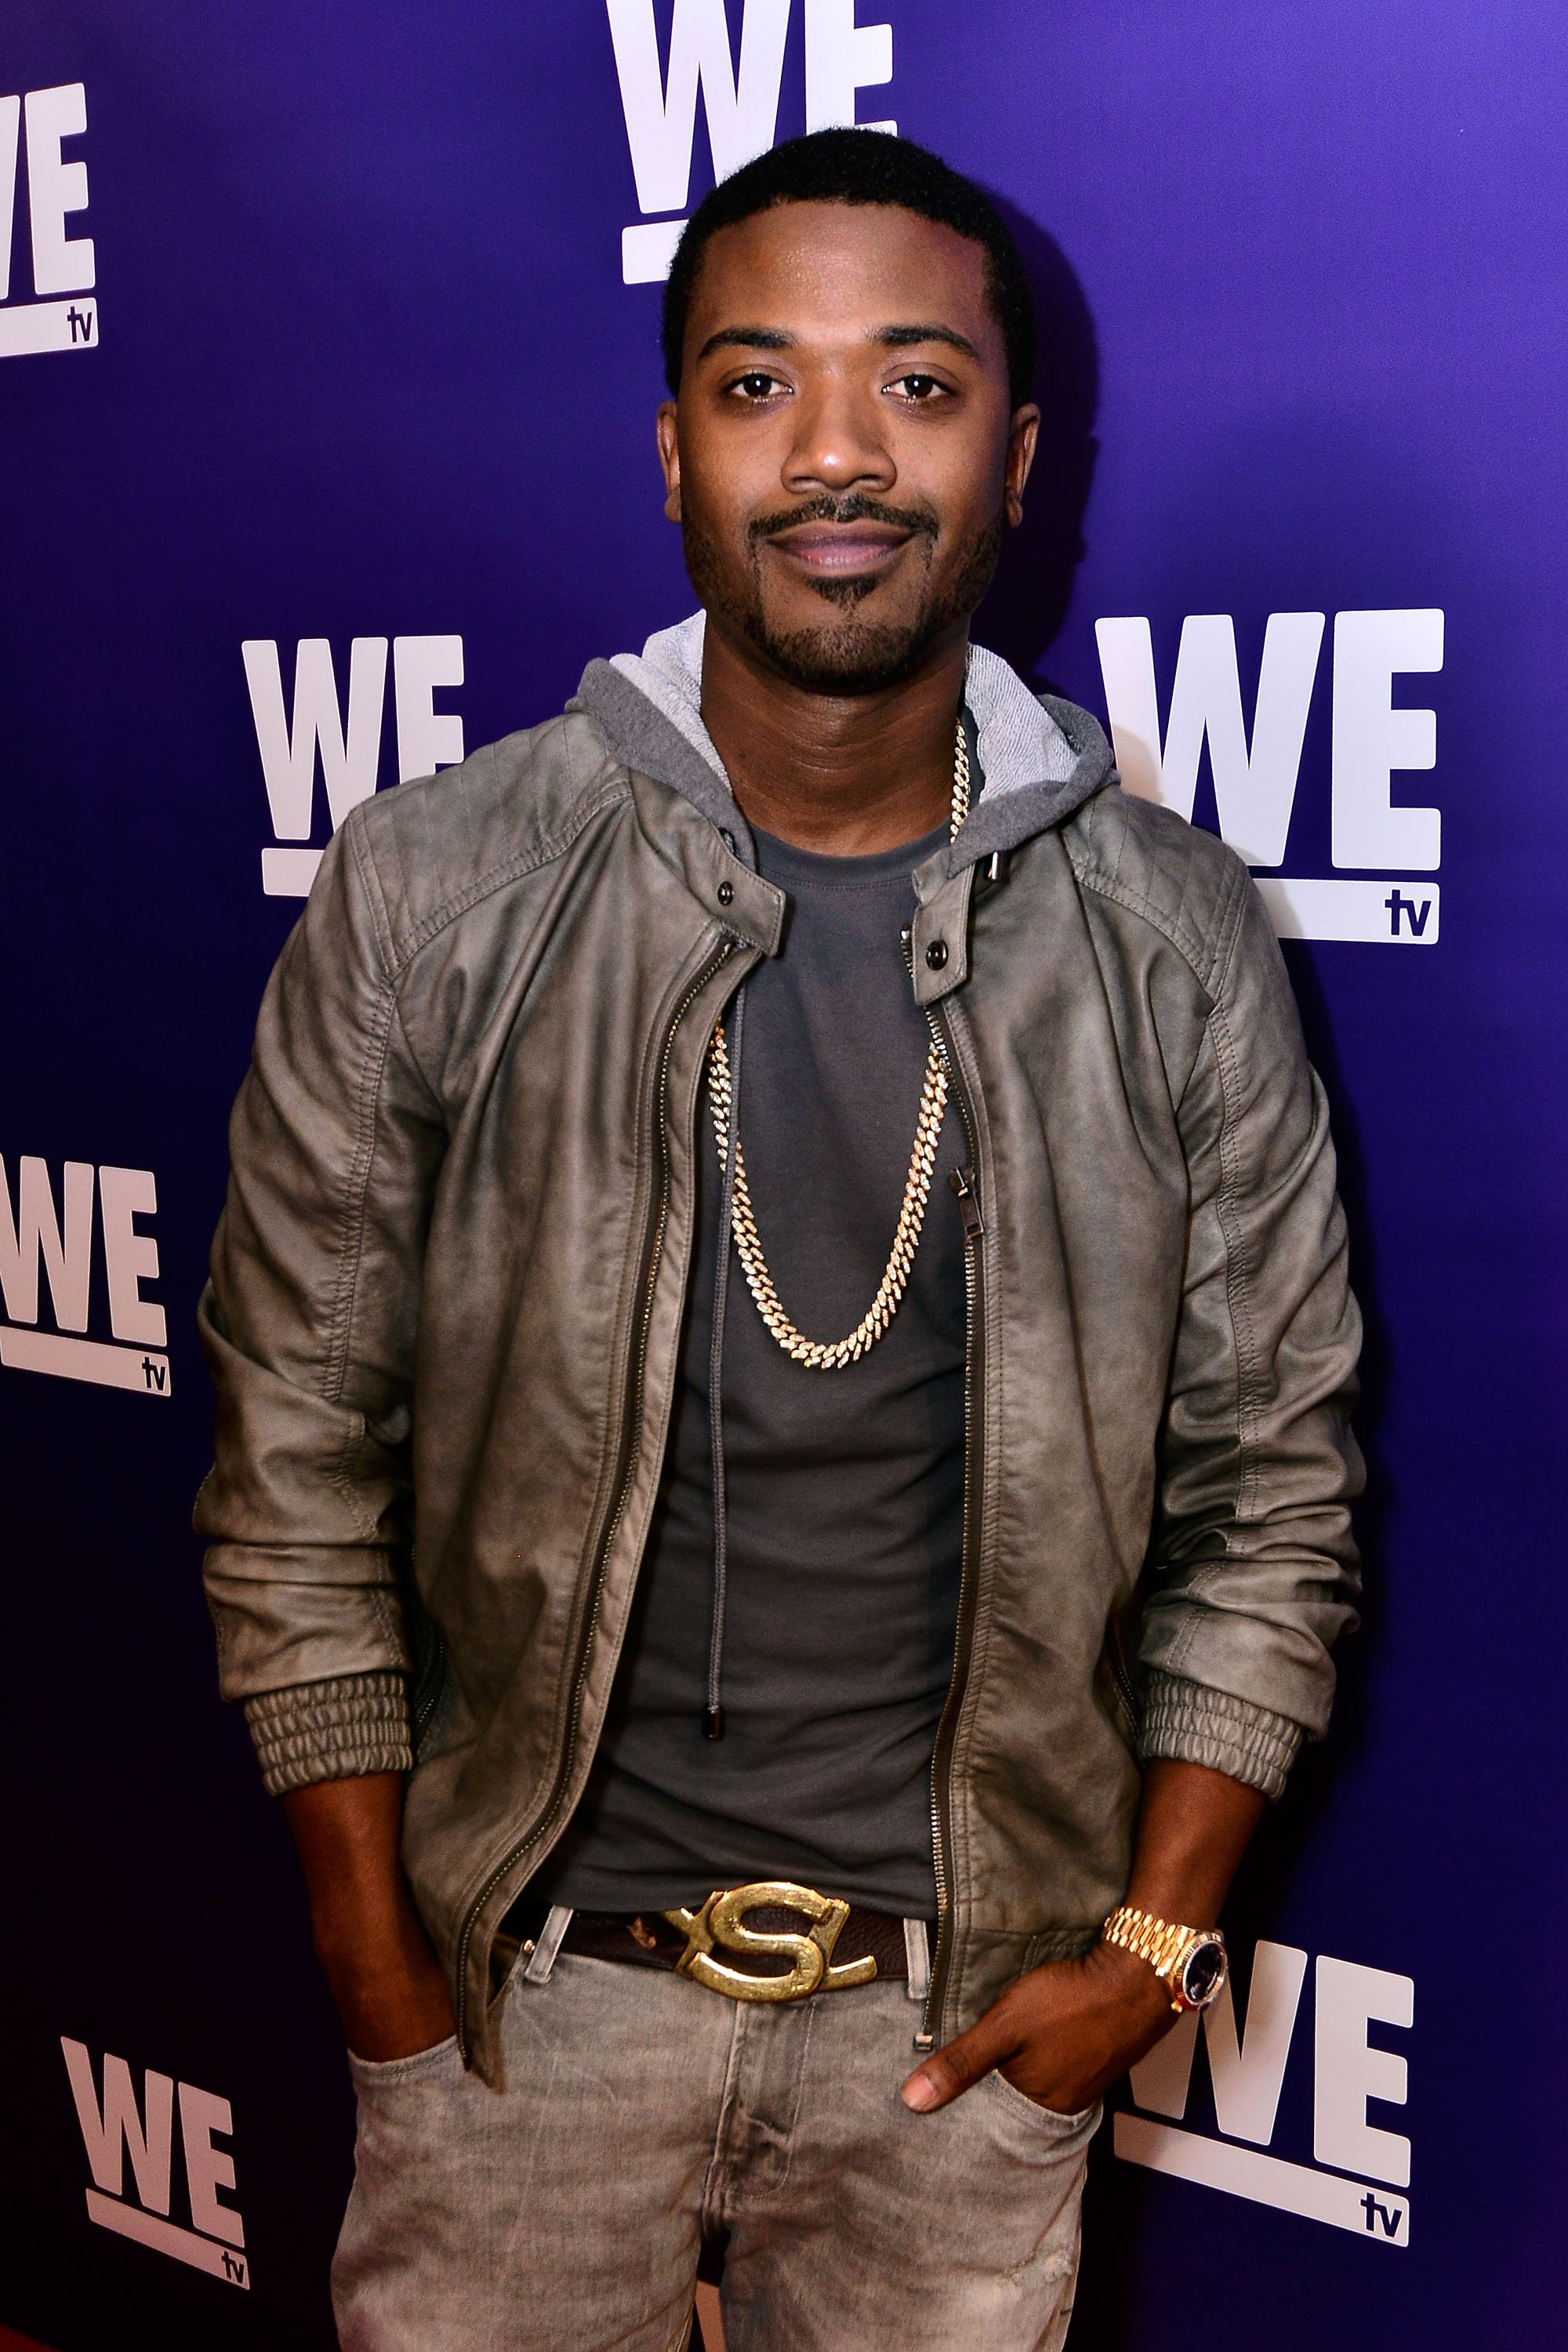 Ray J attending a WE Tv event in March 2015. | Photo: Getty Images